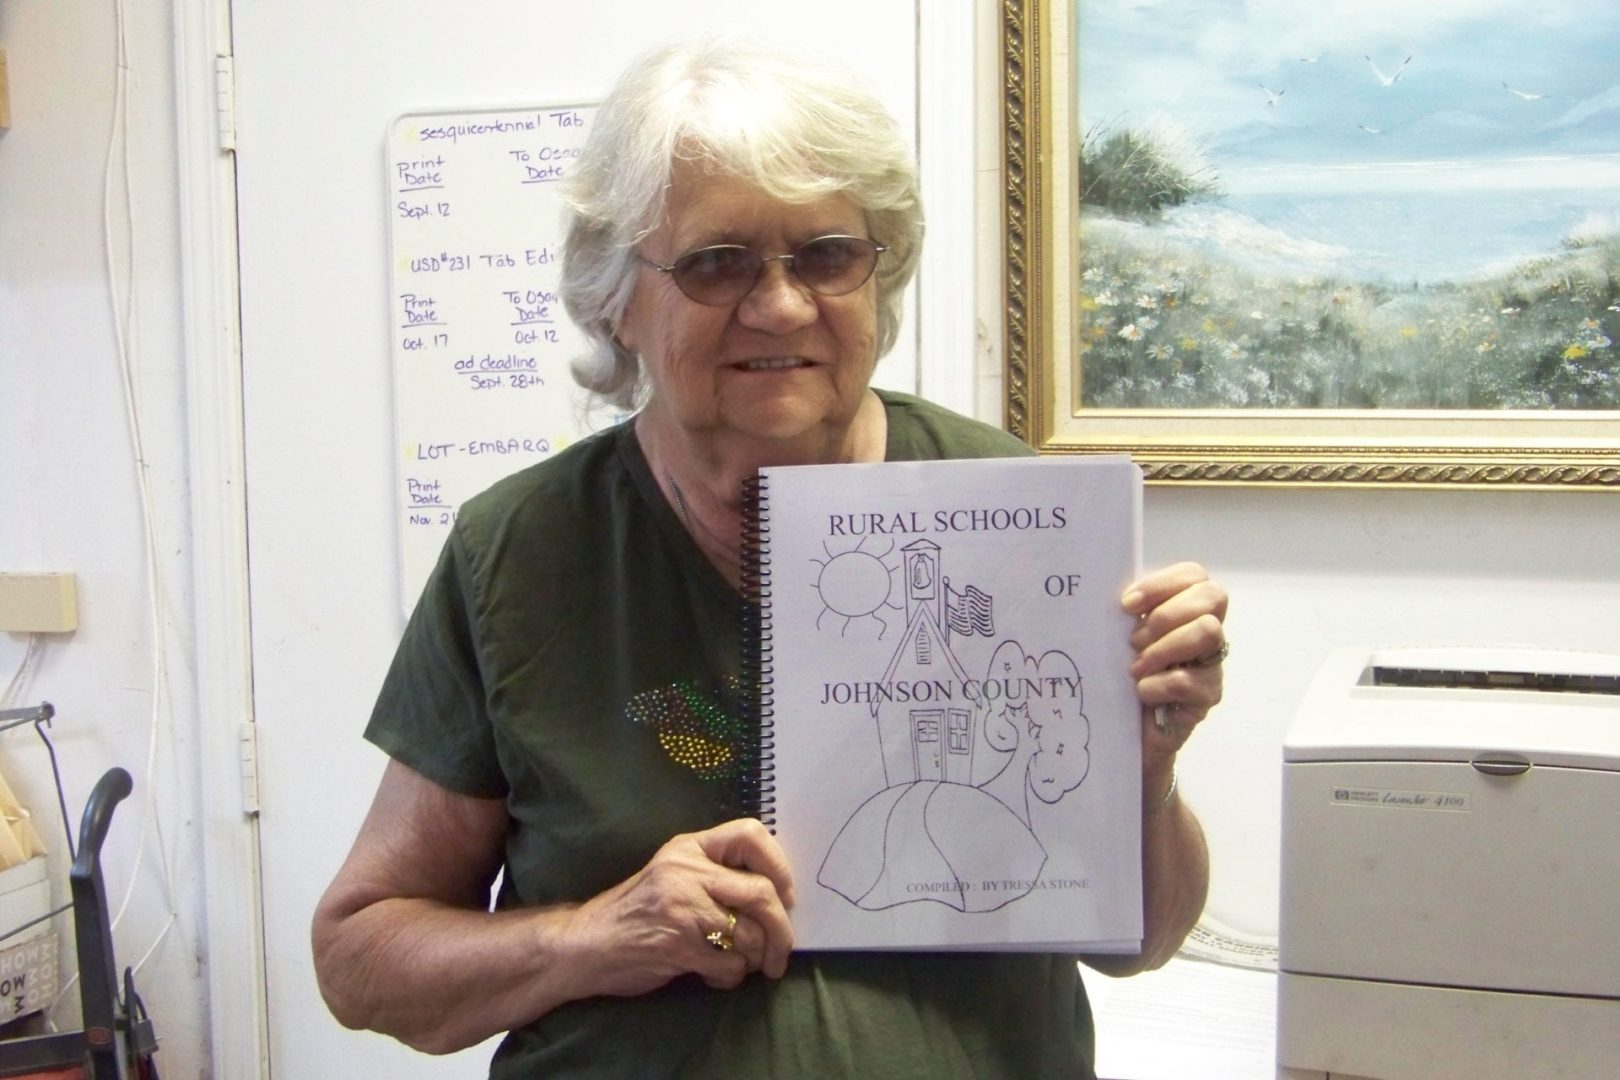 Area woman finishes work on new book about rural schools